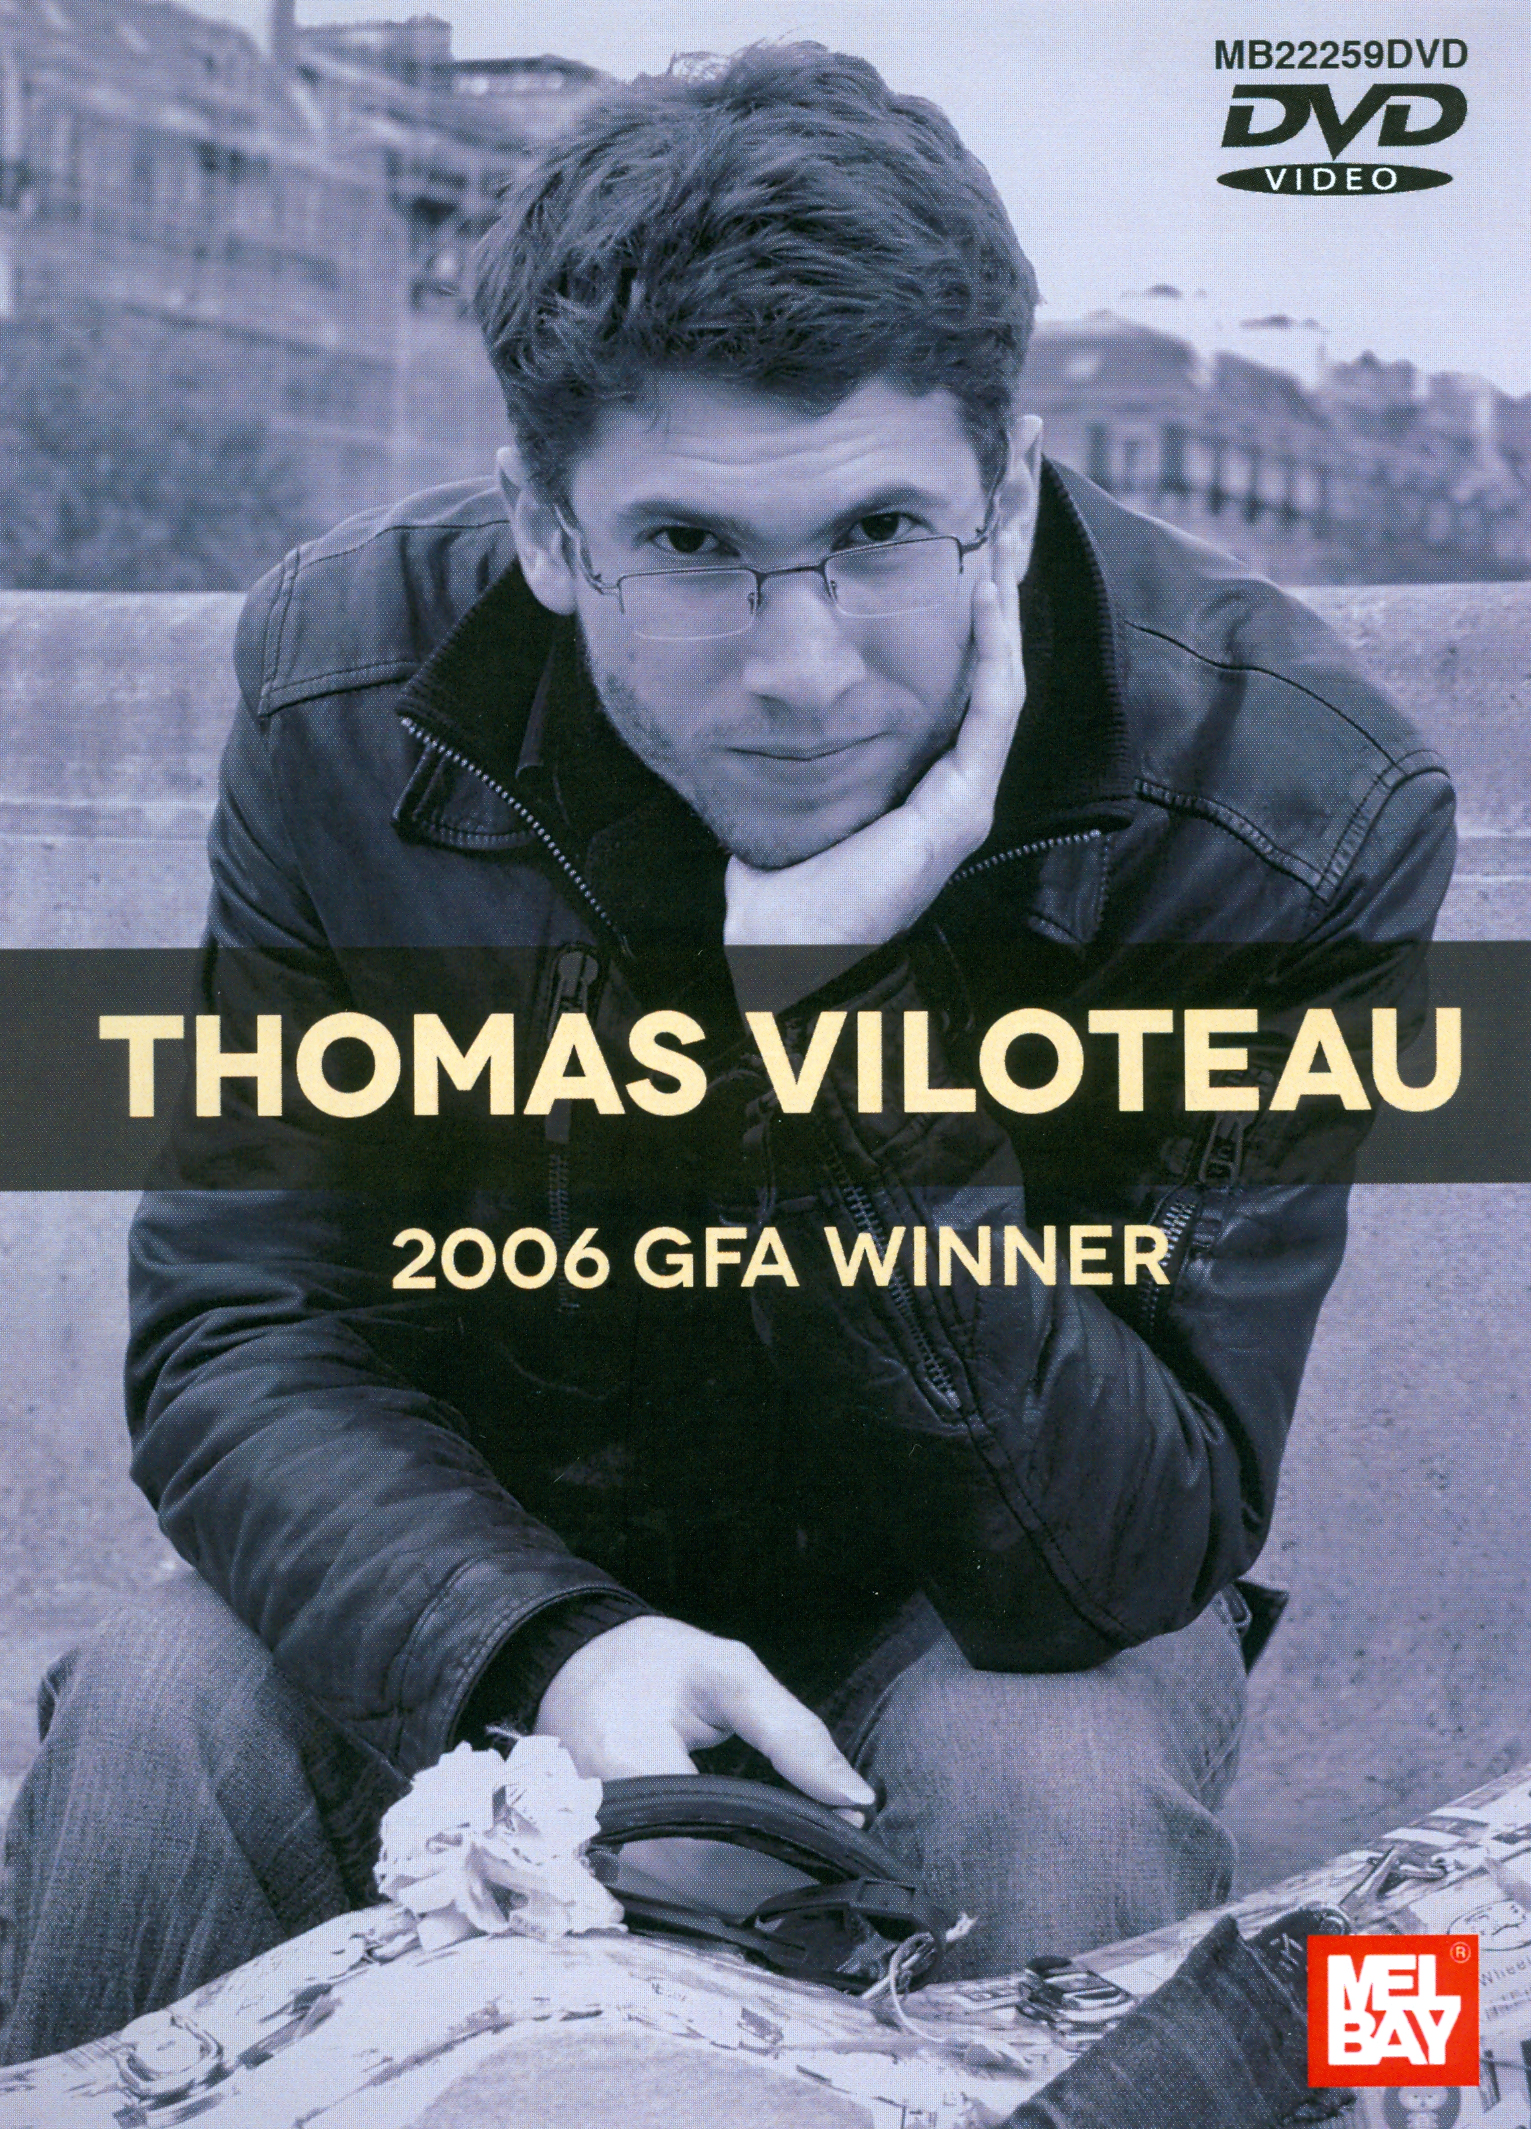 Thomas Viloteau: 2006 GFA Winner